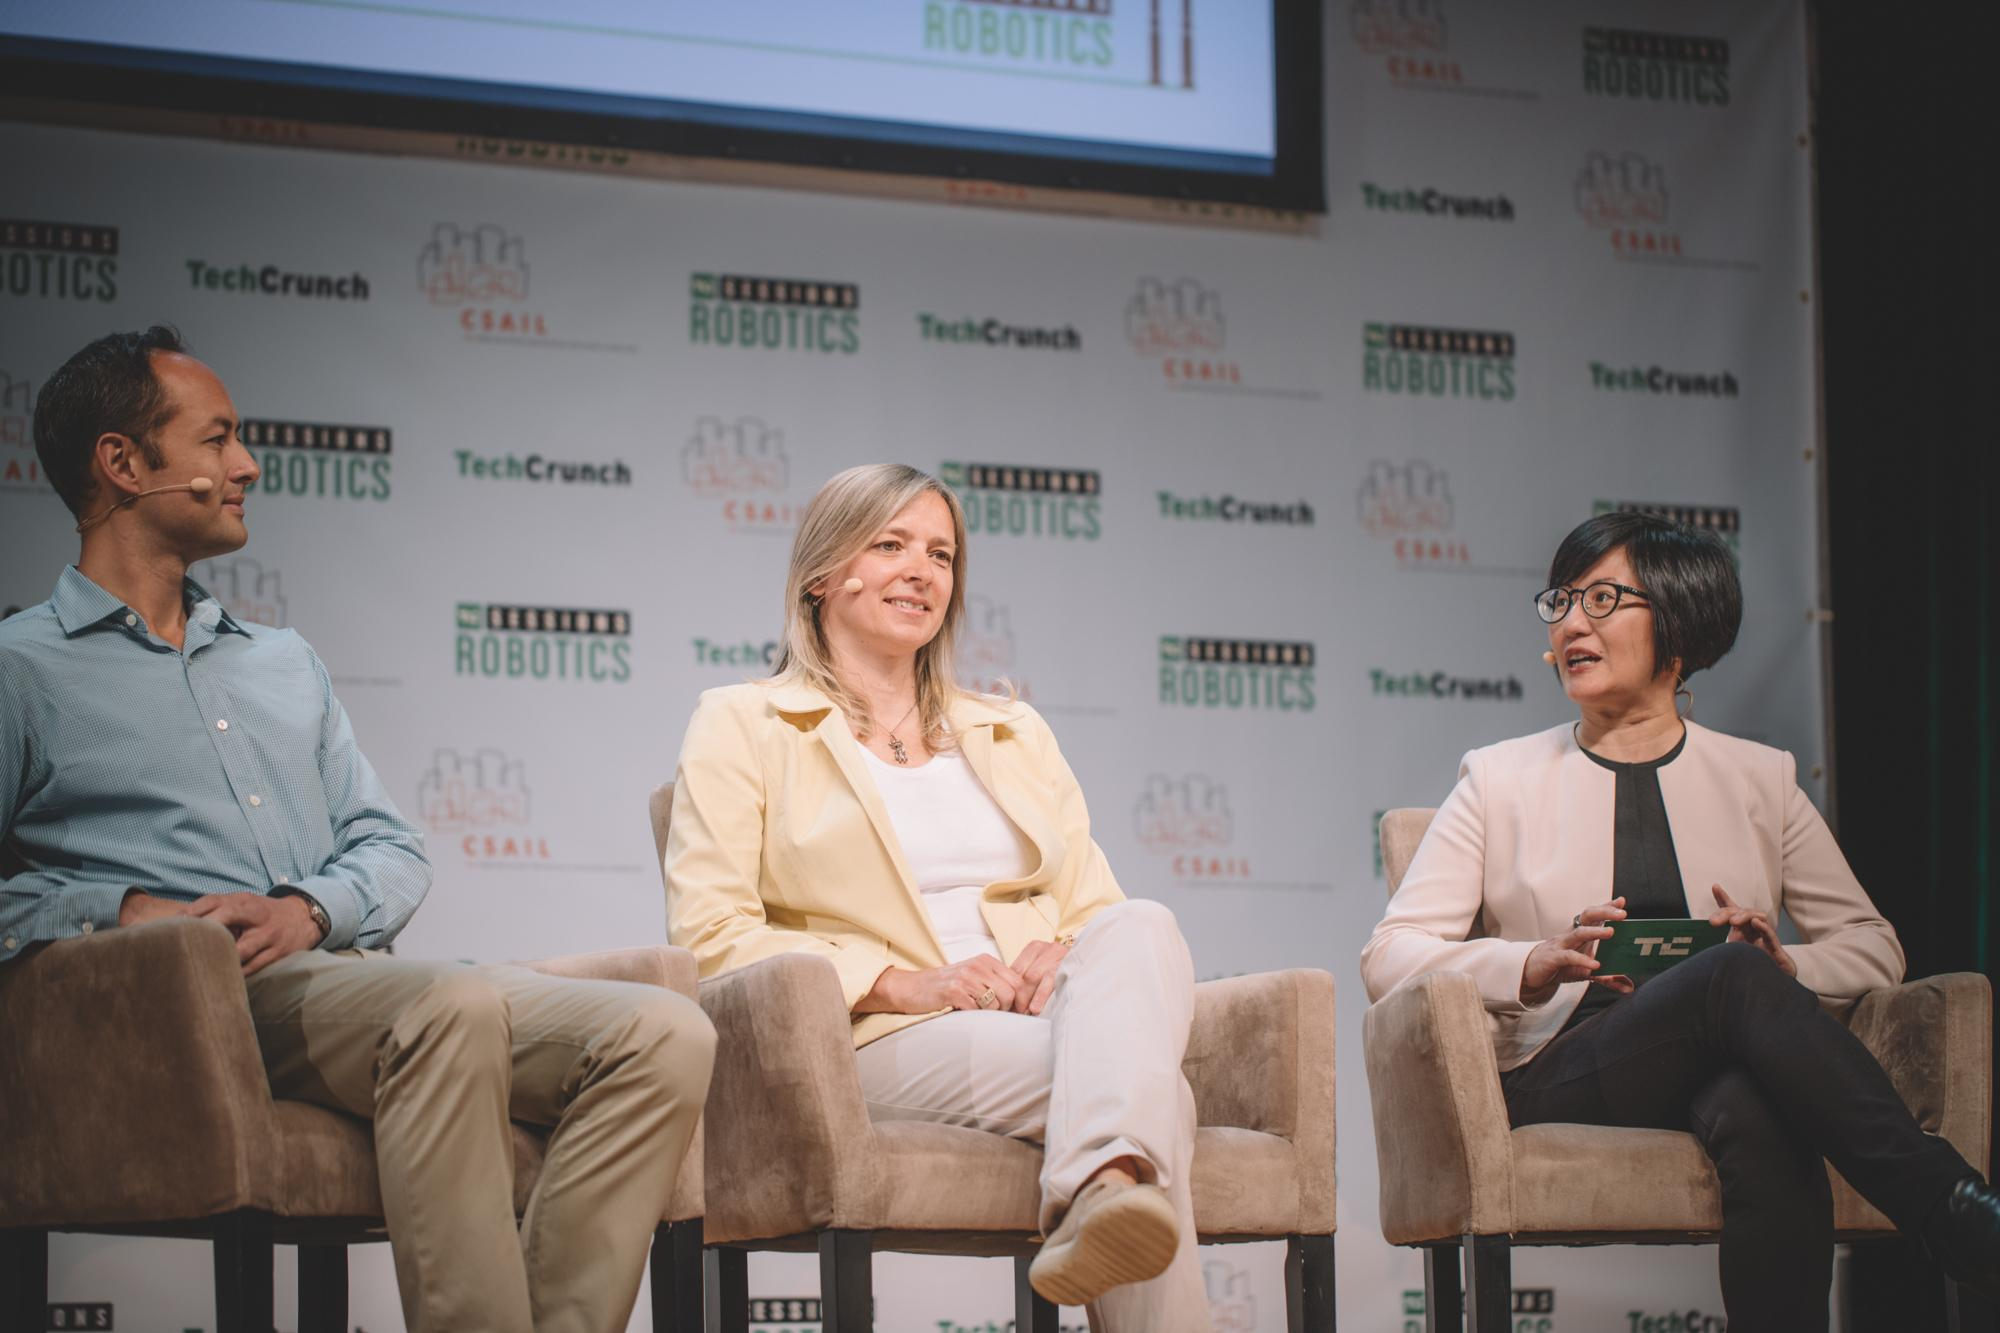 Building A Robotics Startup from Angel to Exit with Helen Greiner (CyPhy Works), Andy Wheeler (GV) and Elaine Chen (Martin Trust Center for MIT Entrepreneurship)